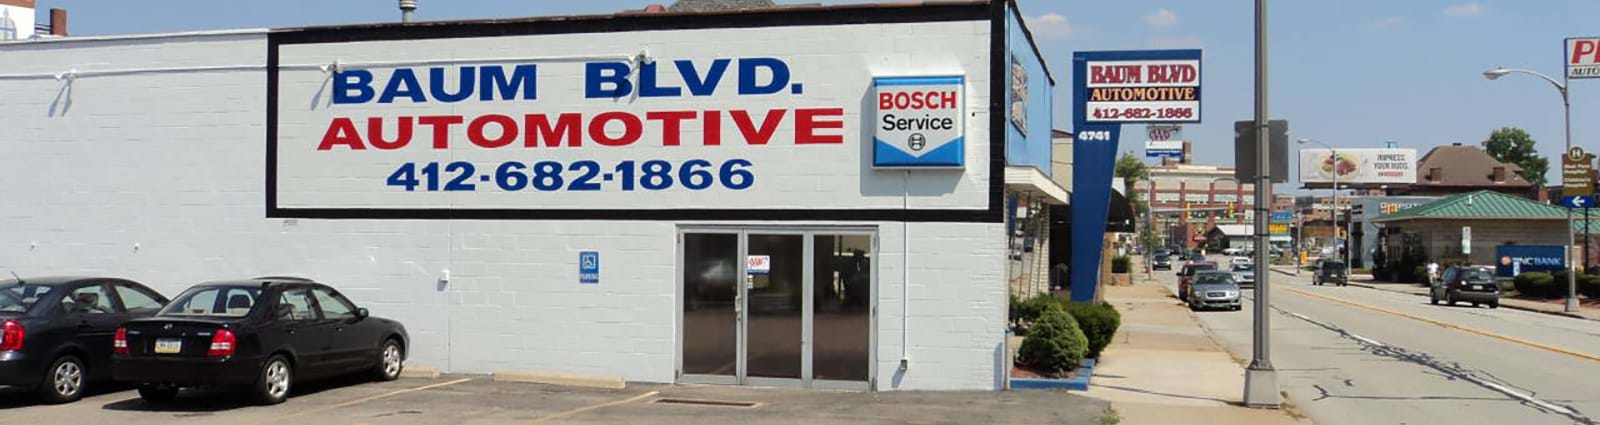 Baum Boulevard Automotive exterior